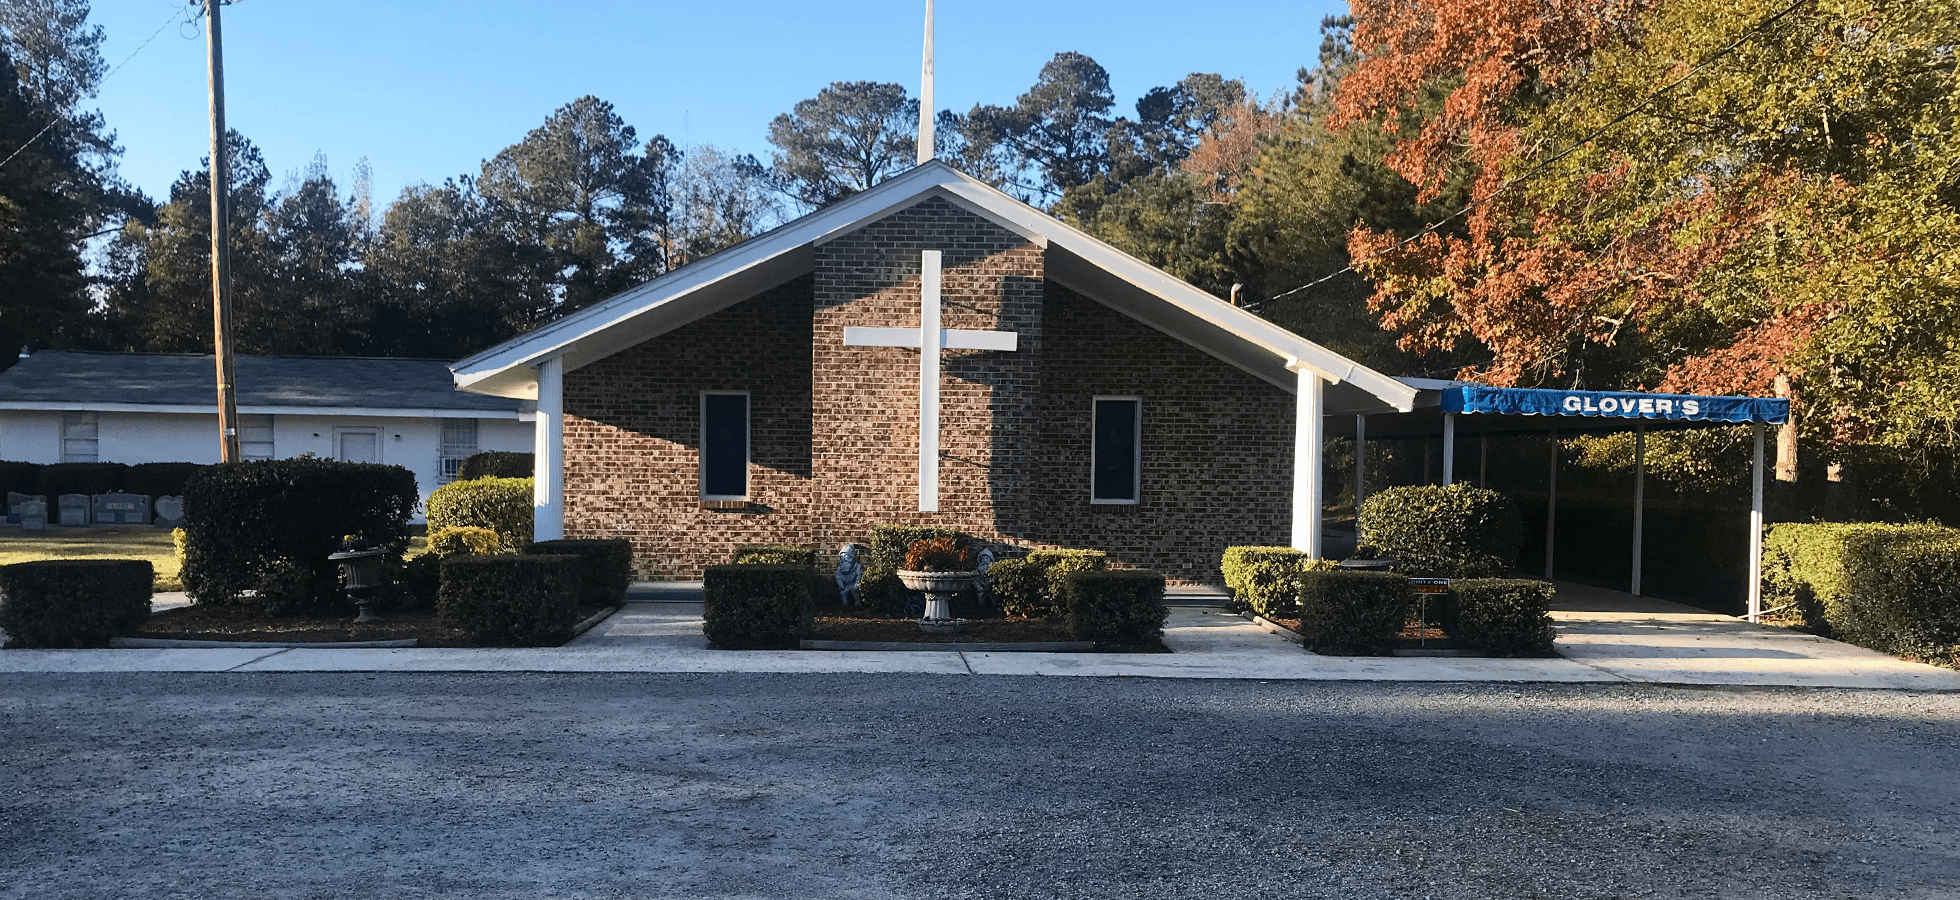 Glover's Funeral Home | Orangeburg SC funeral home and cremation